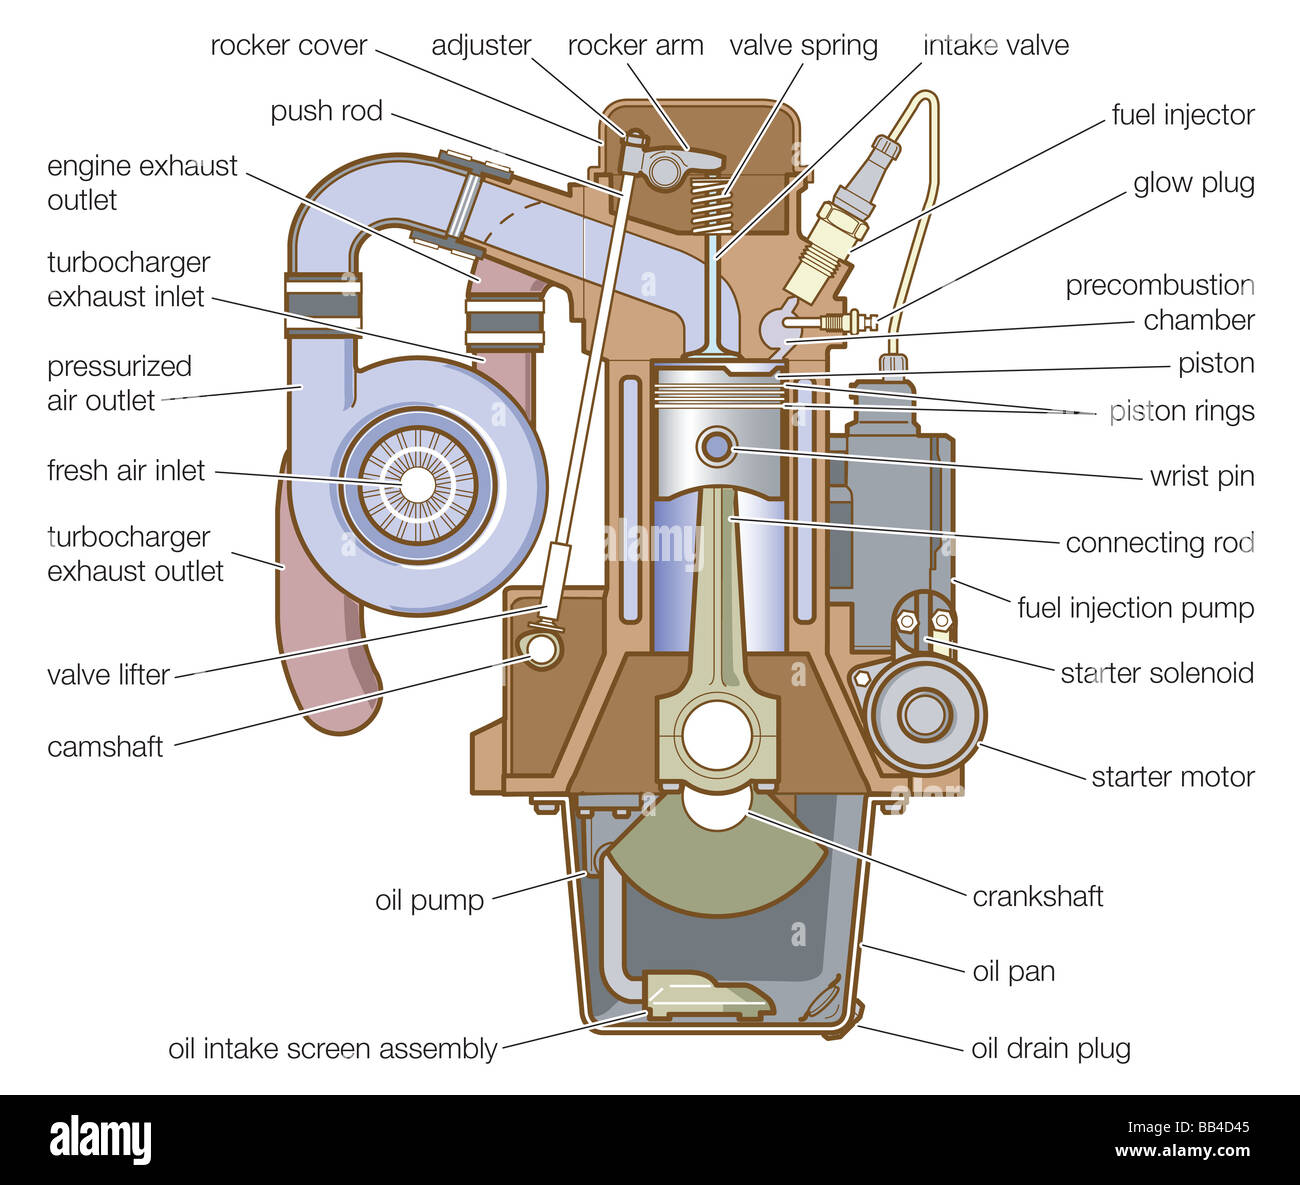 Diesel Combustion Engine Diagram Circuit Wiring And Hub Of Motorcycle Equipped With A Precombustion Chamber Stock Photo Rh Alamy Com Gasoline